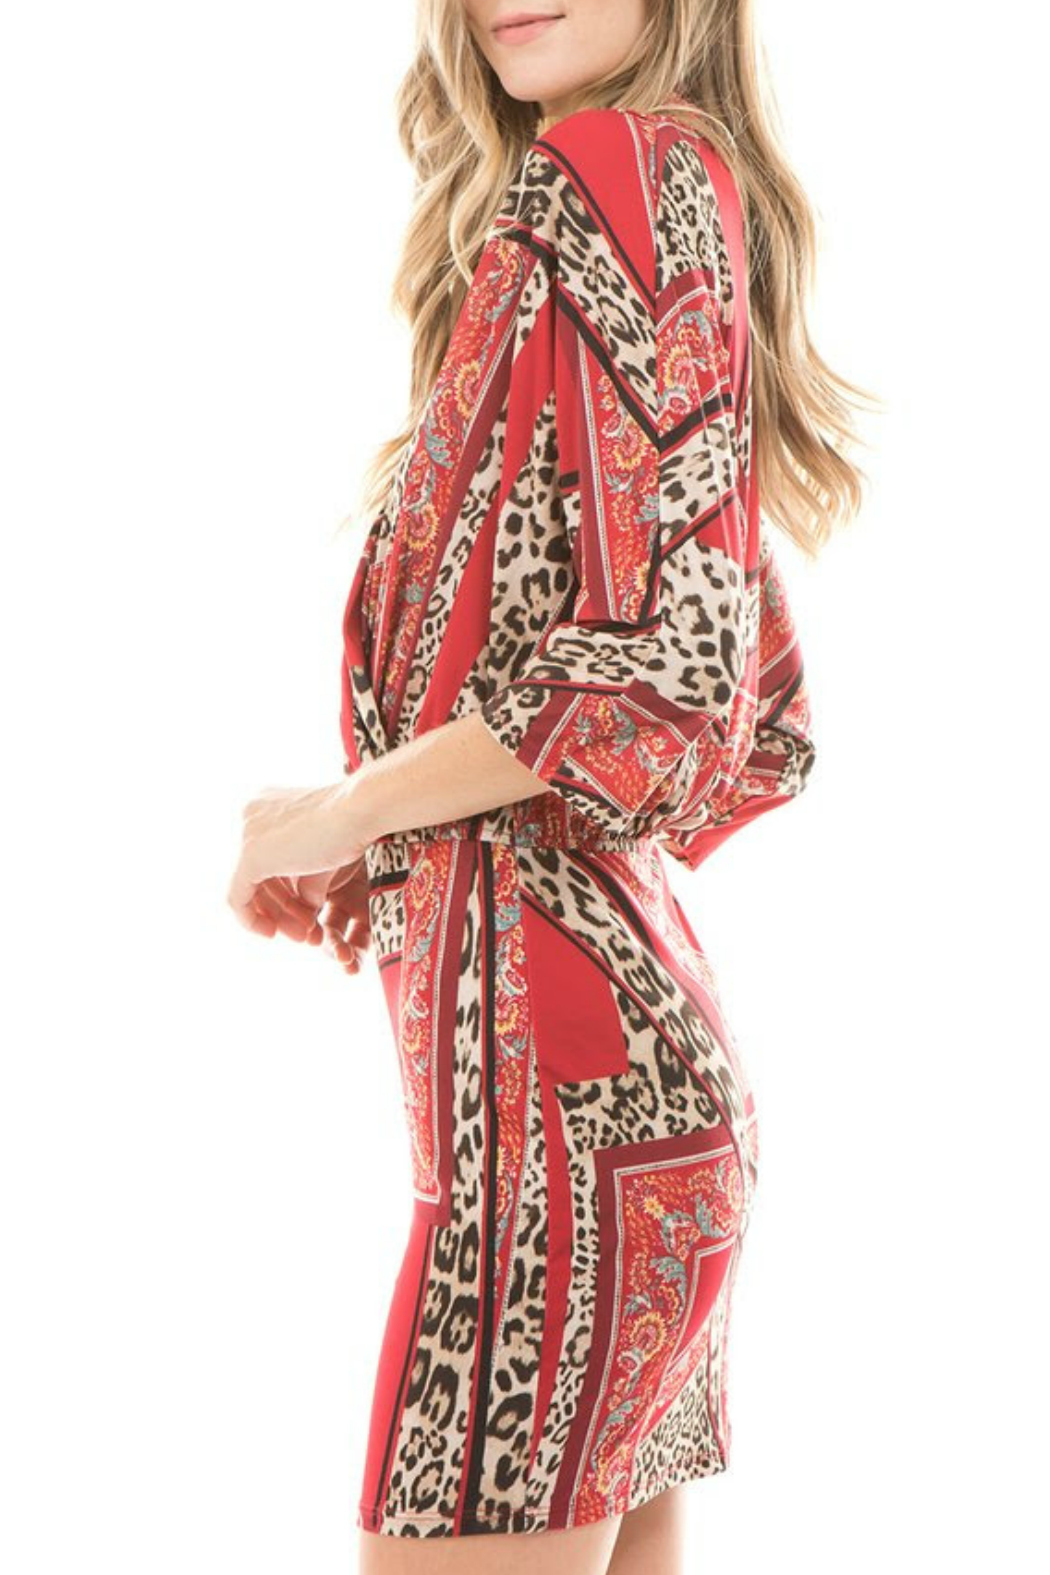 Vava by Joy Hahn Livia leopard floral kimono dress - Front Full Image